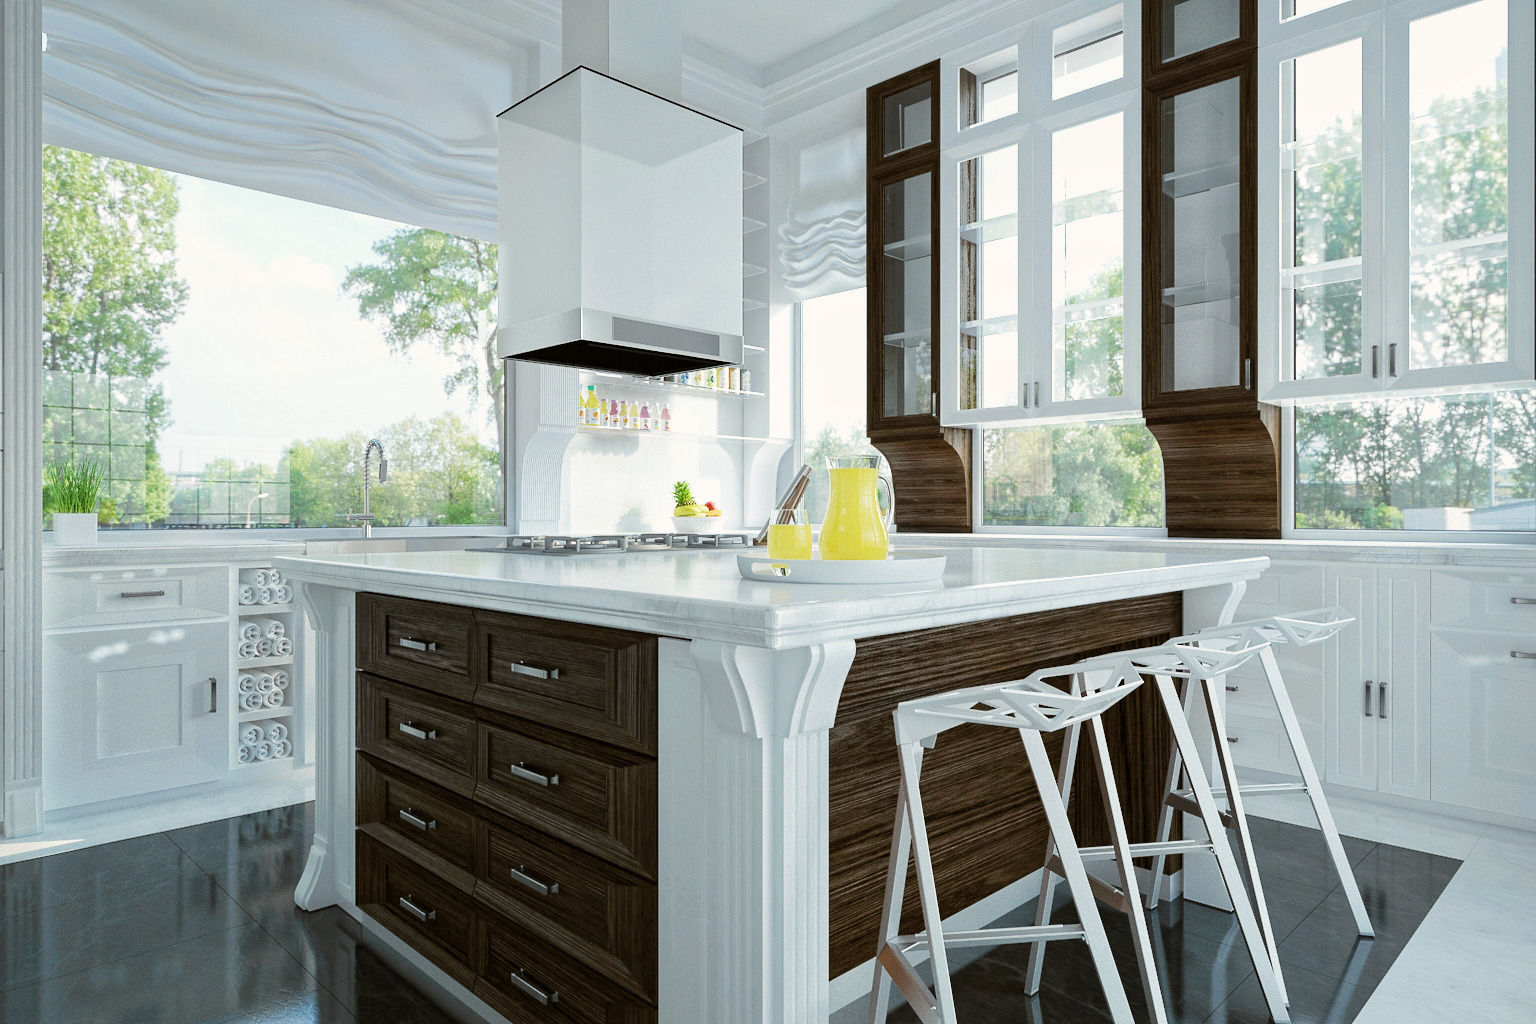 ... Royal Kitchen Design Interior 3d Model Max 2 ...